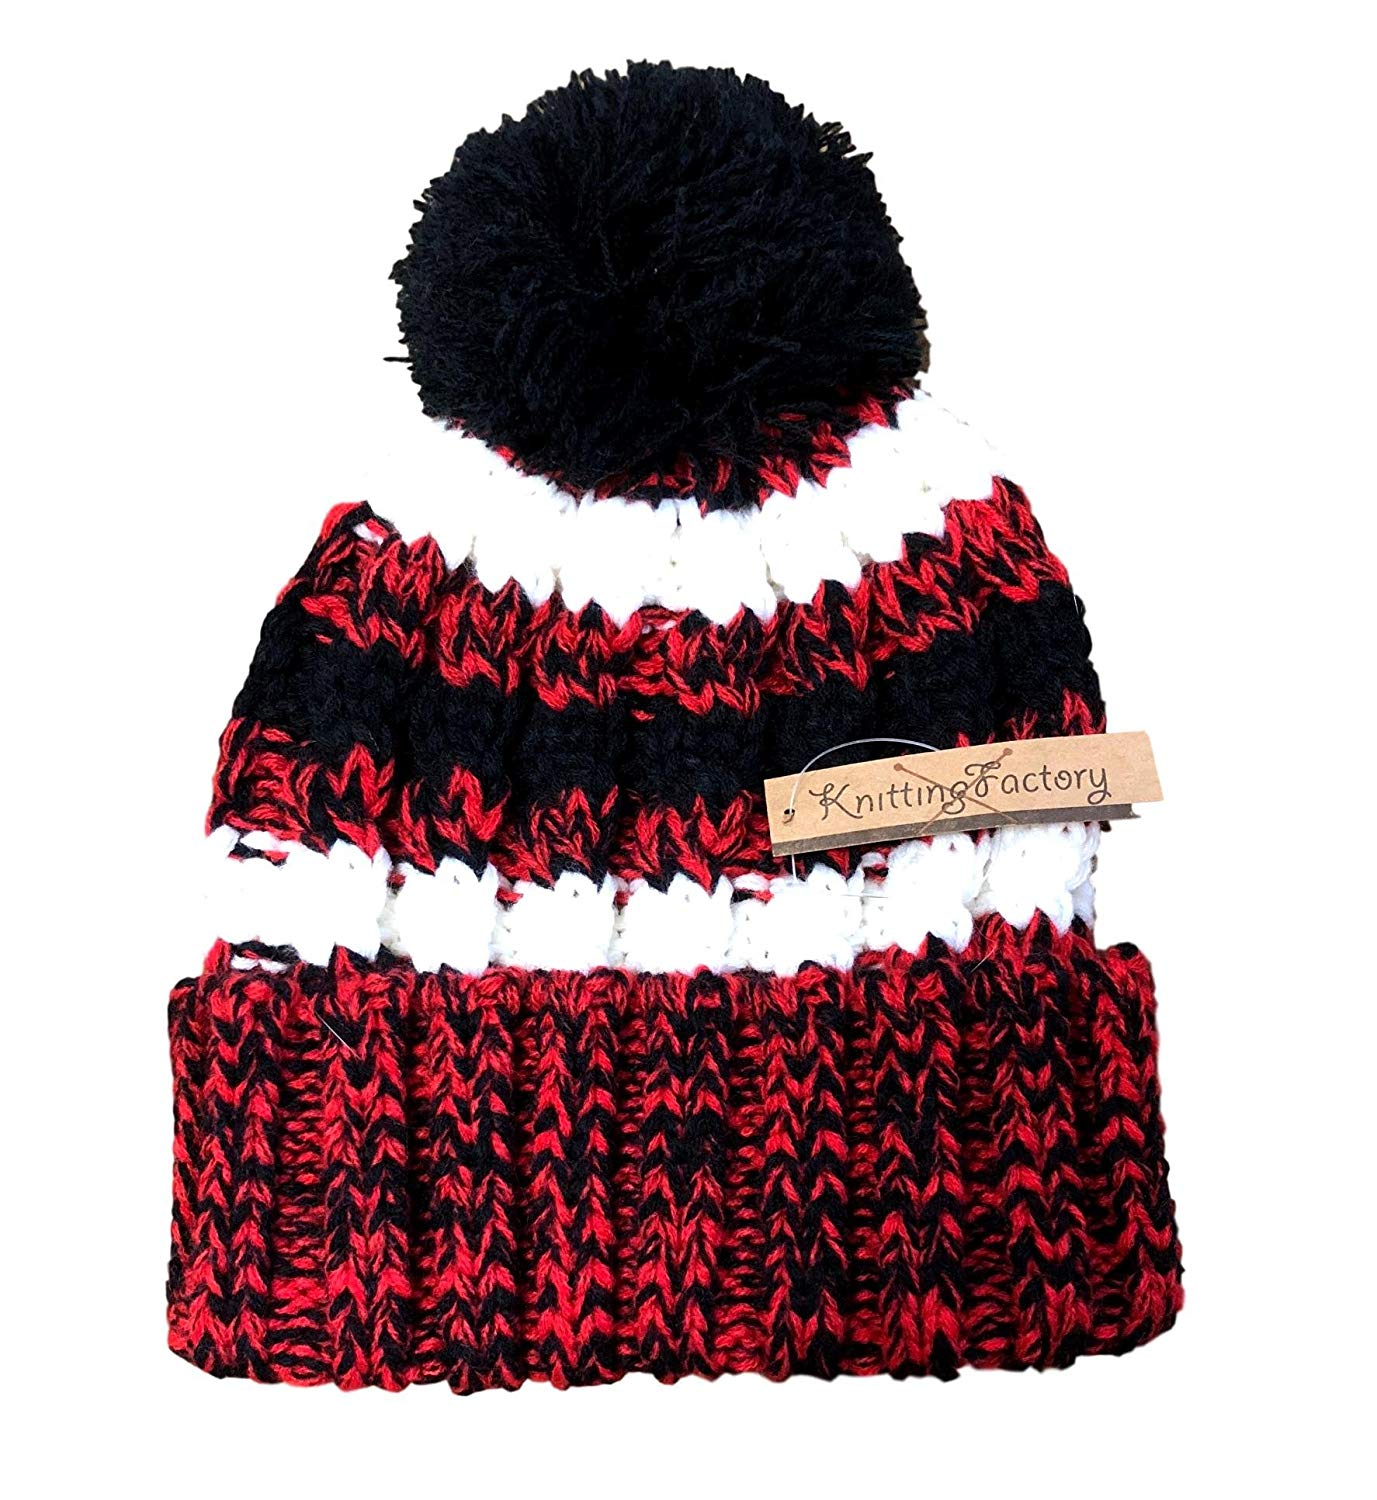 3f10a0f7013 Knitting Factory Unisex Winter Pom Pom Beanie Hat Knit Warm Cozy Hat Red  Black White Combo